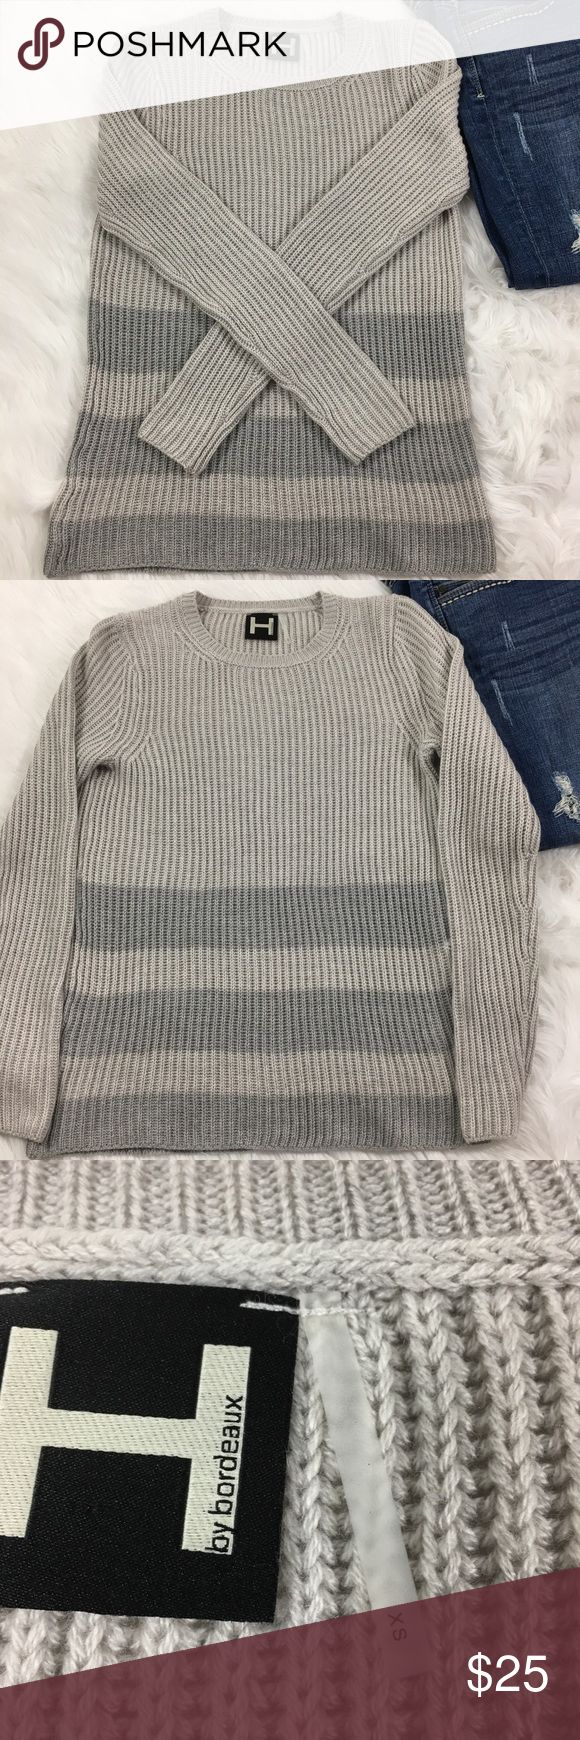 h by bordeaux sweater beautiful sweater from h by bordeaux from nordstrom gently worn and